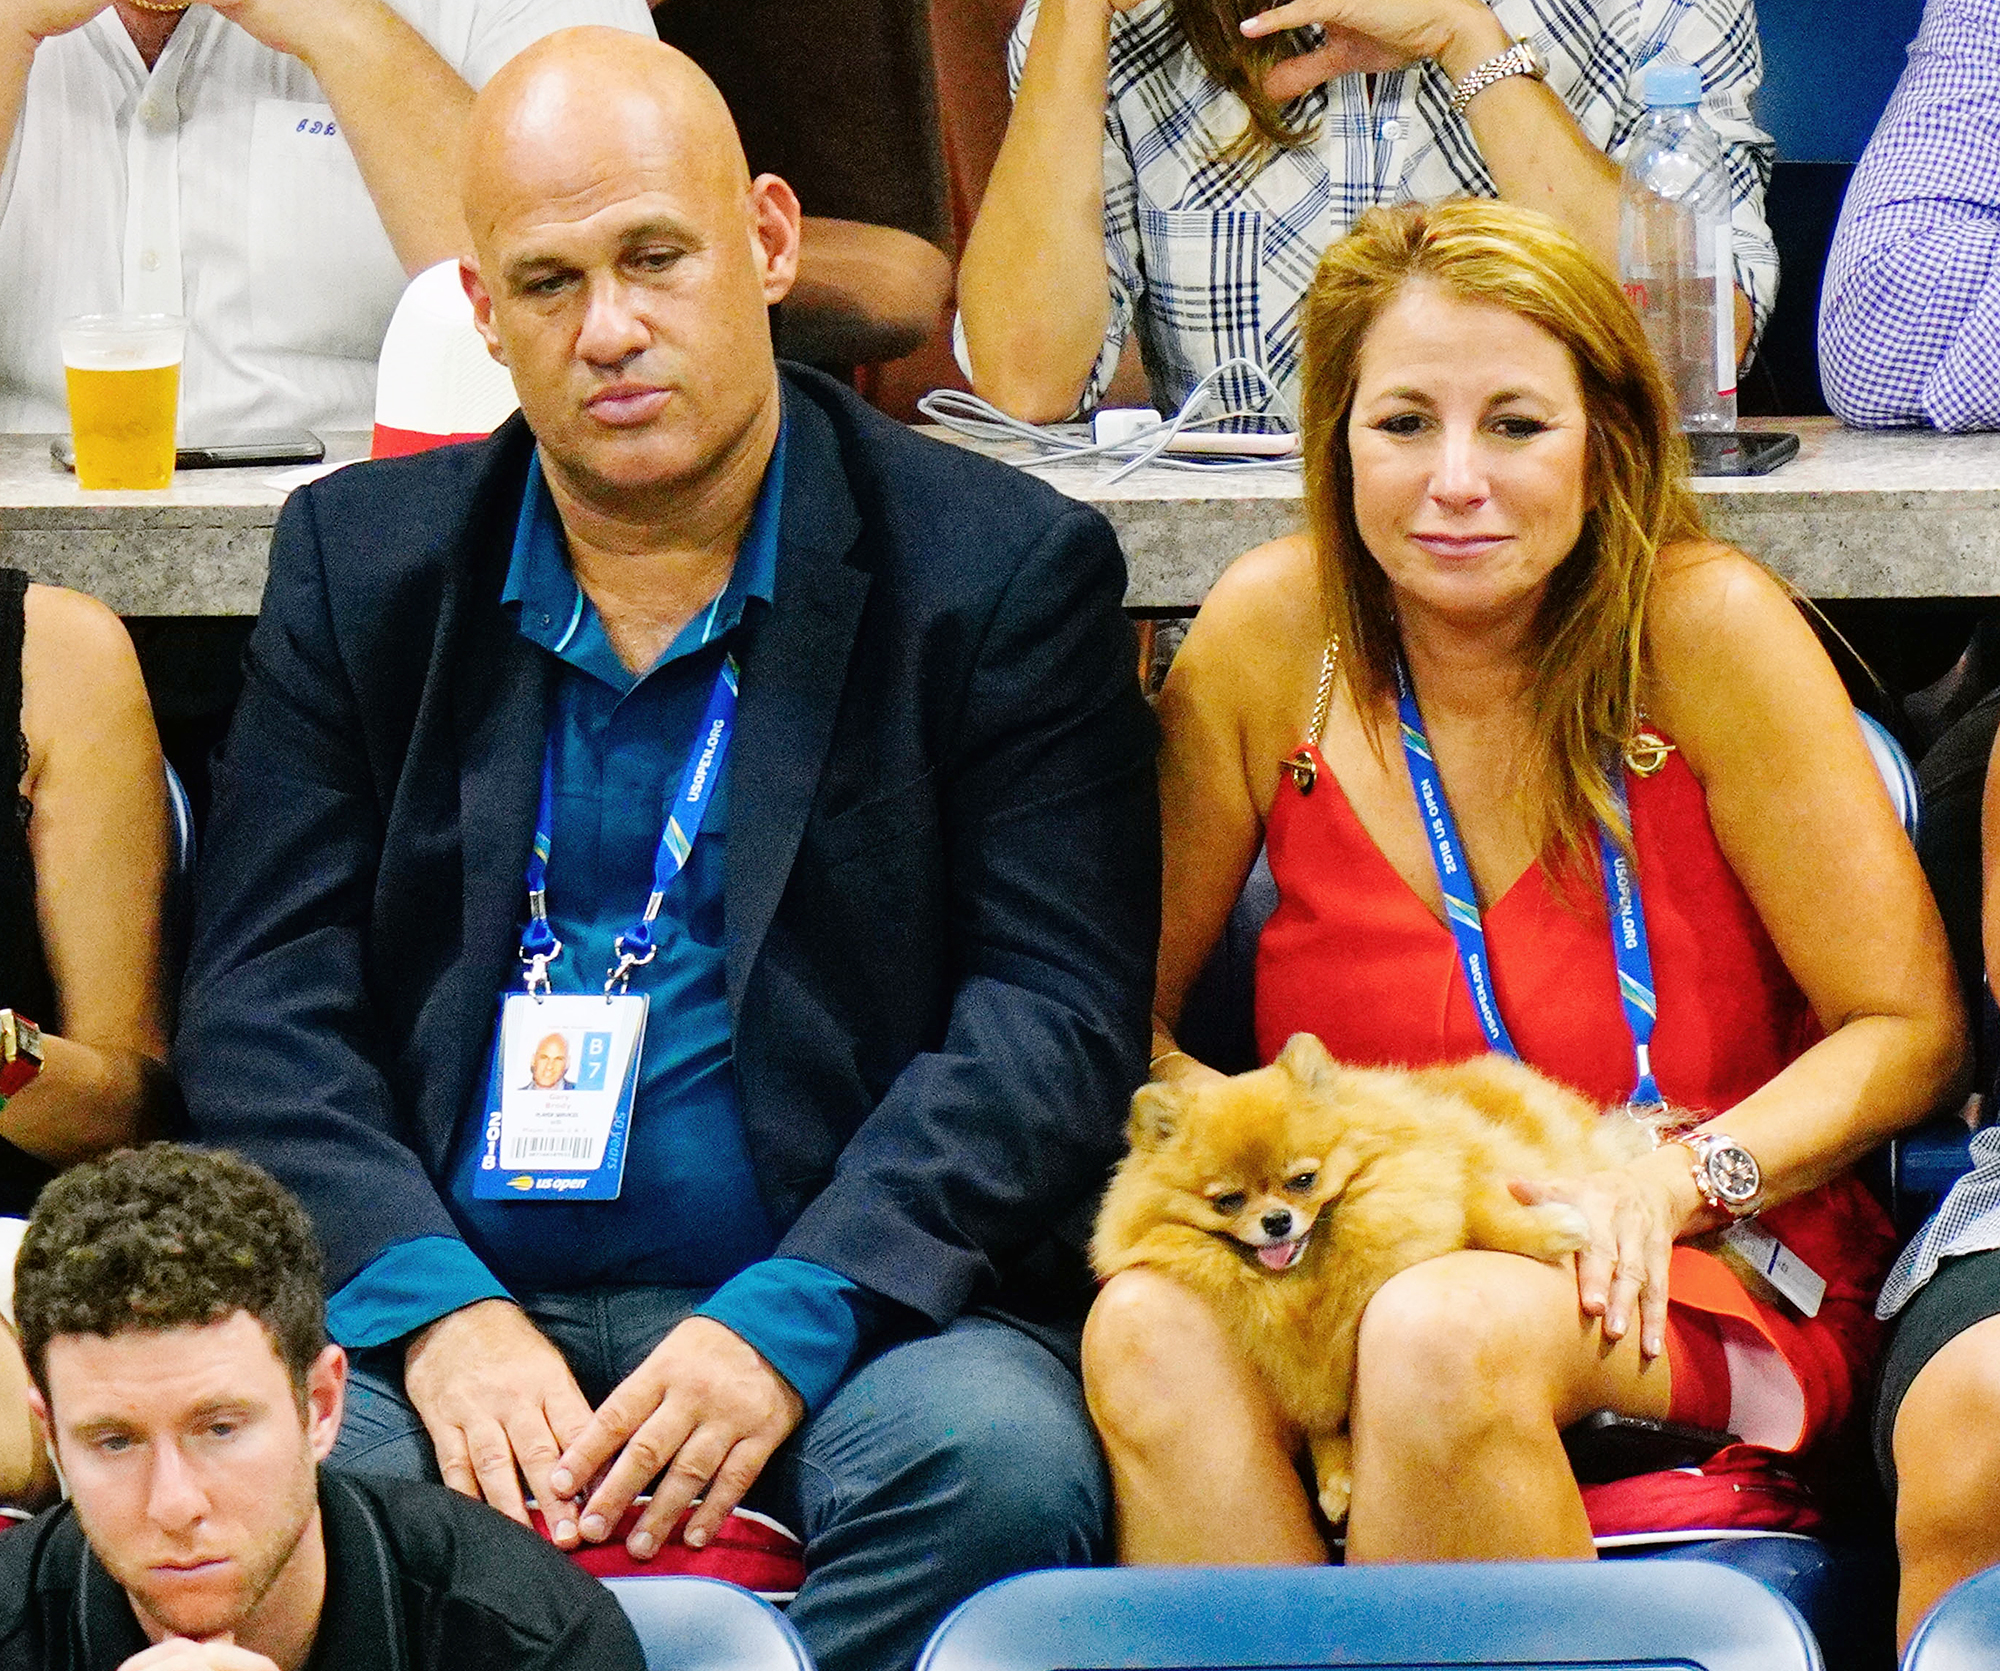 Jill Zarin Gary Brody Us Open 2018 - The Real Housewives of New York City star spent time with her new boyfriend on September 4, eight months after husband Bobby Zarin's death.